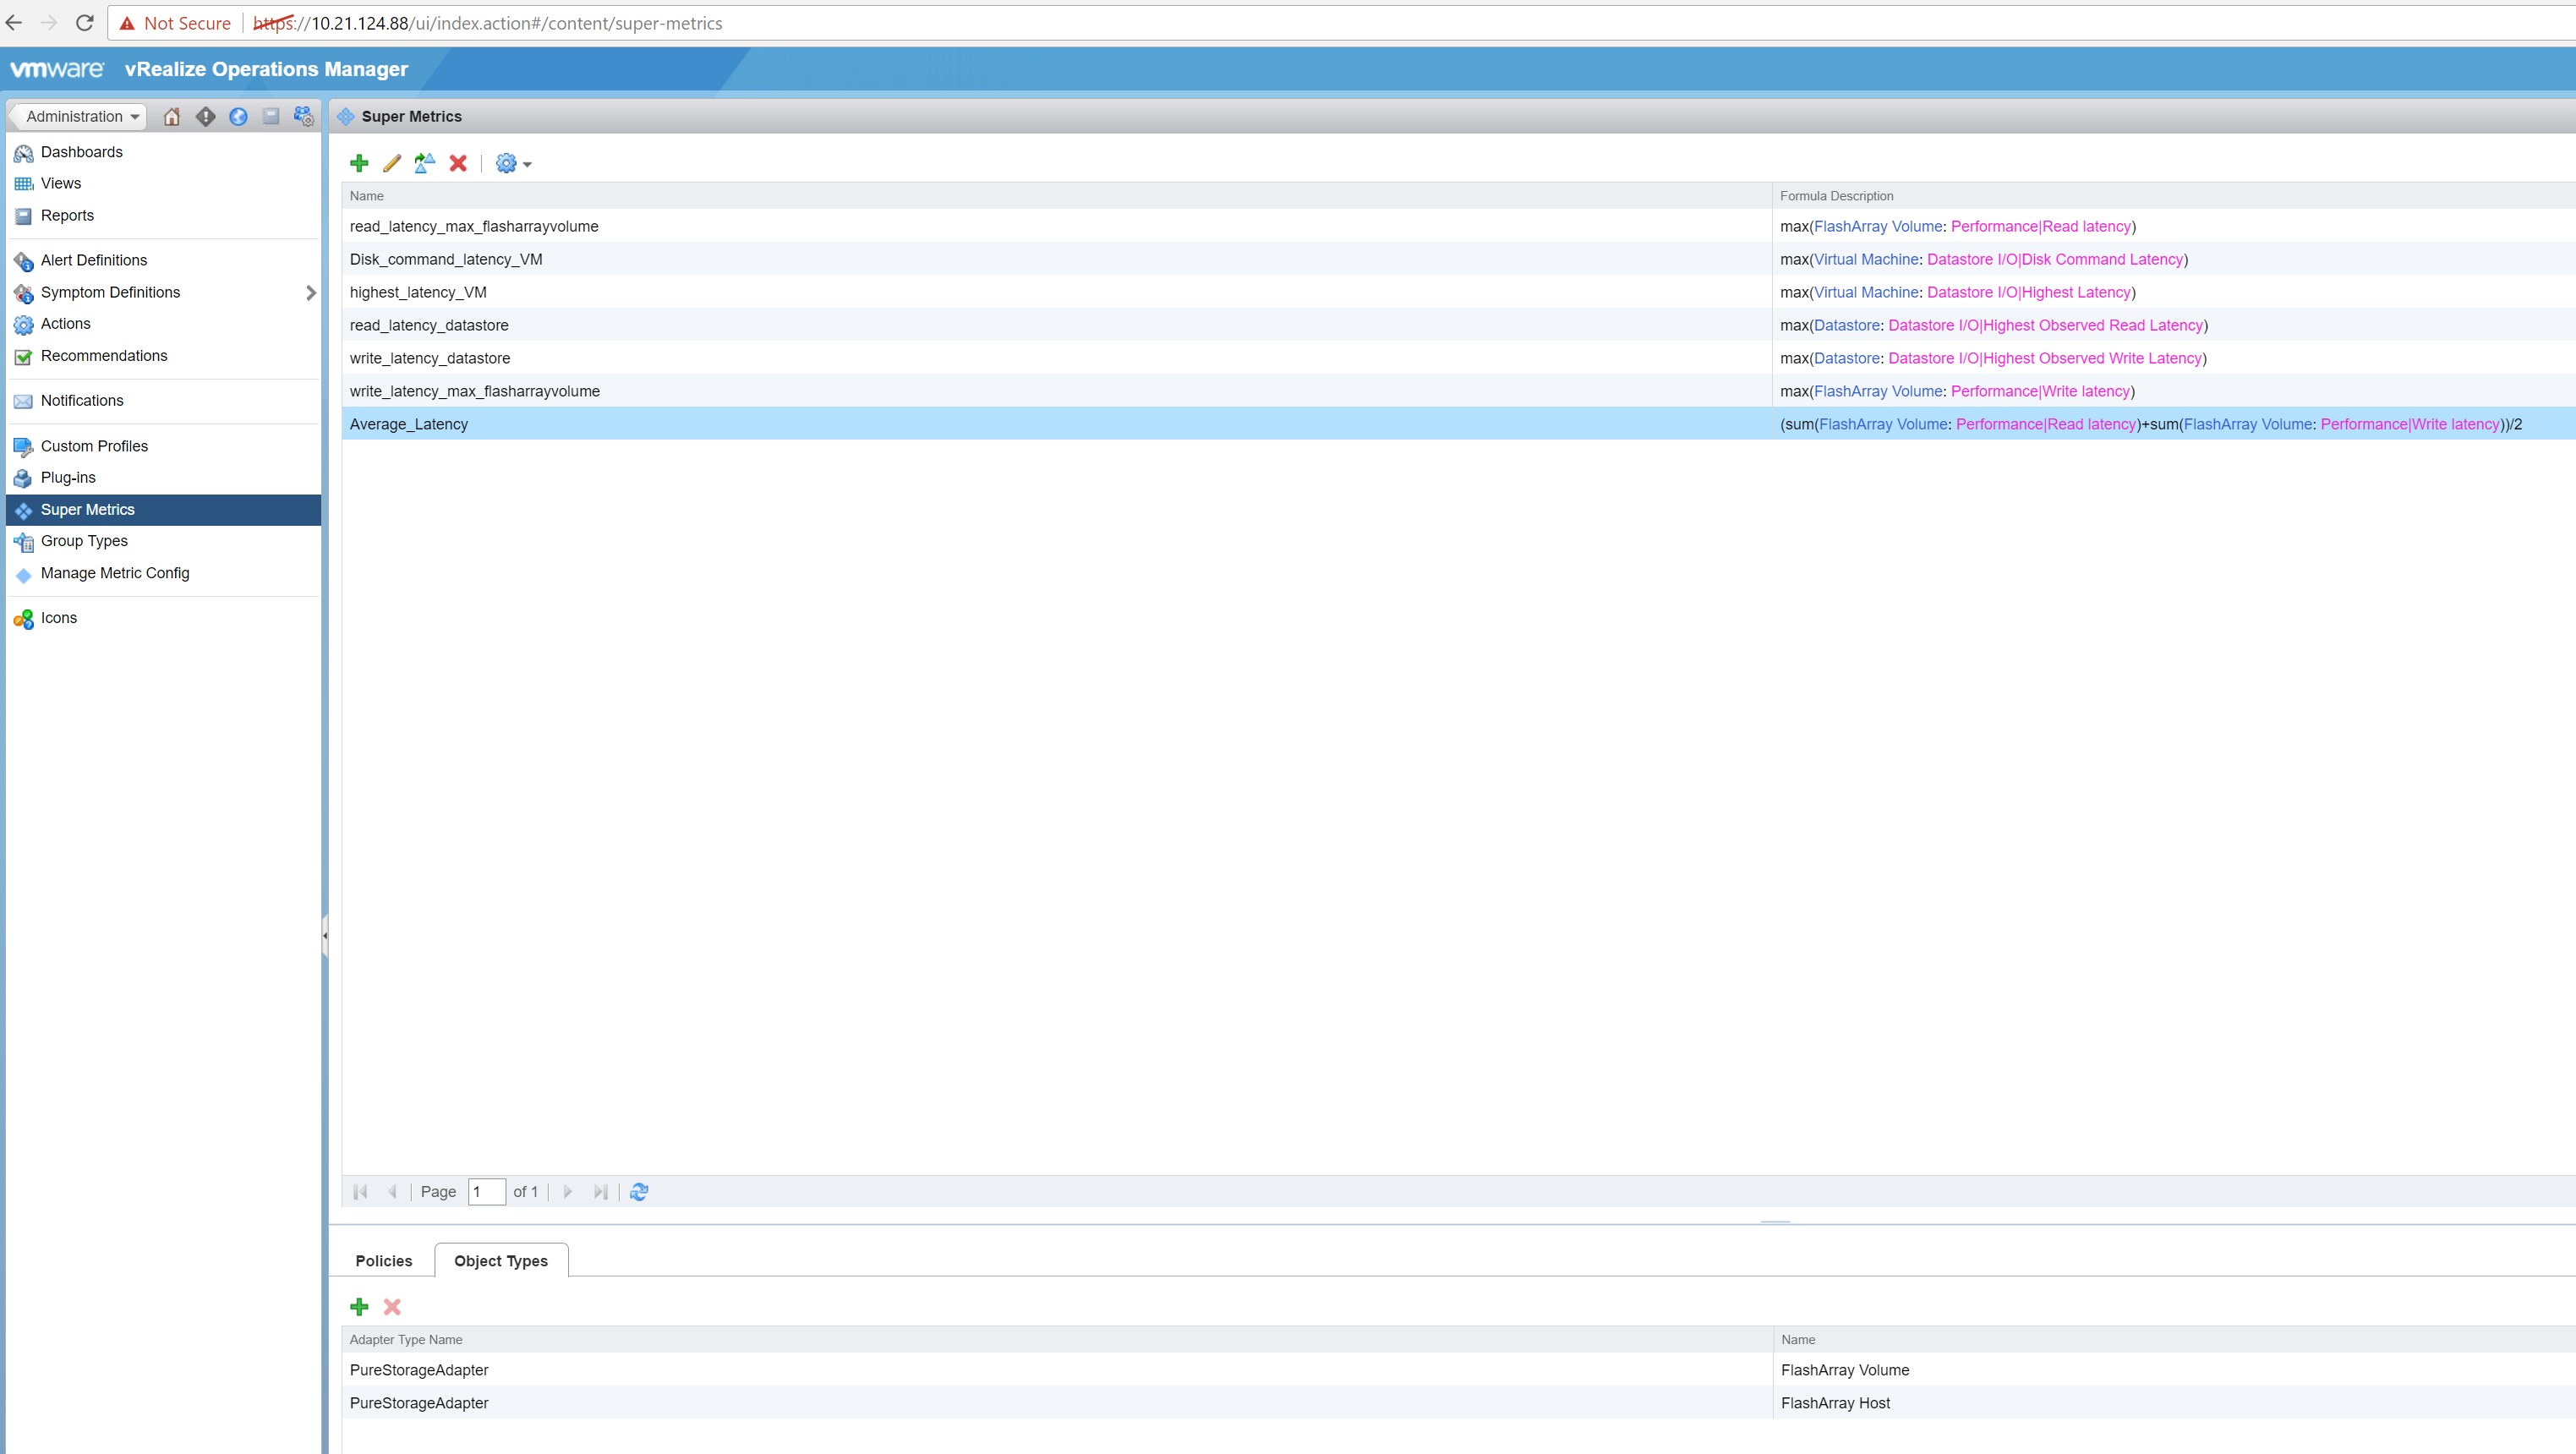 How to create super metric in vRealize Operations Manager – PureLLySUNNY